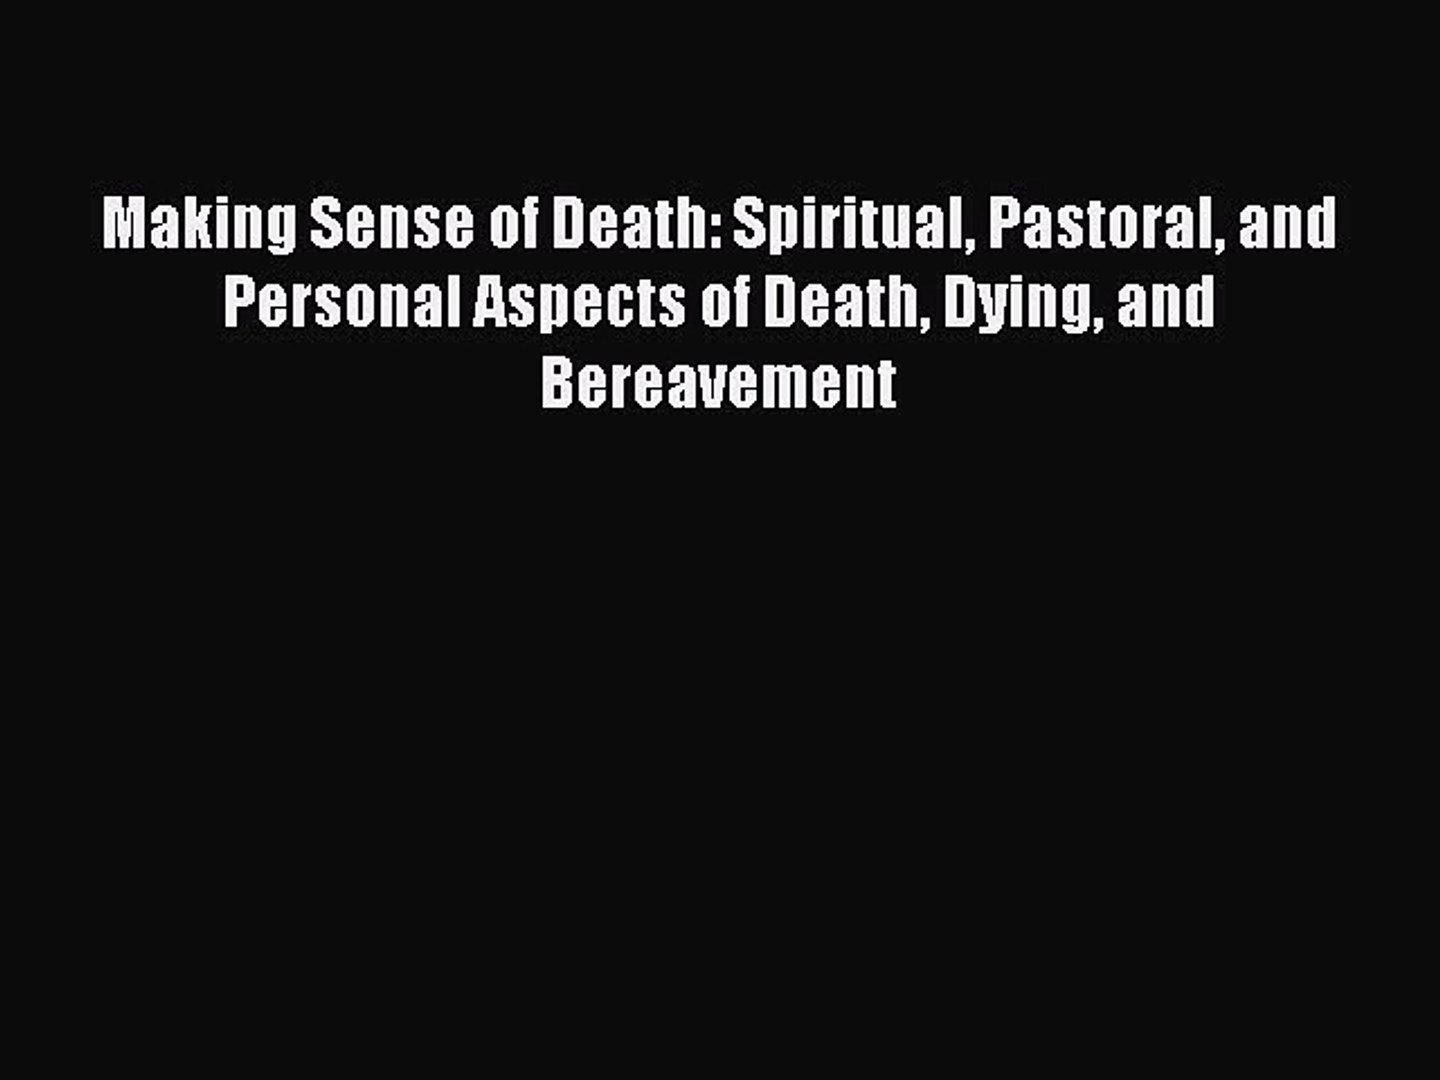 [PDF] Making Sense of Death: Spiritual Pastoral and Personal Aspects of Death Dying and Bereavement